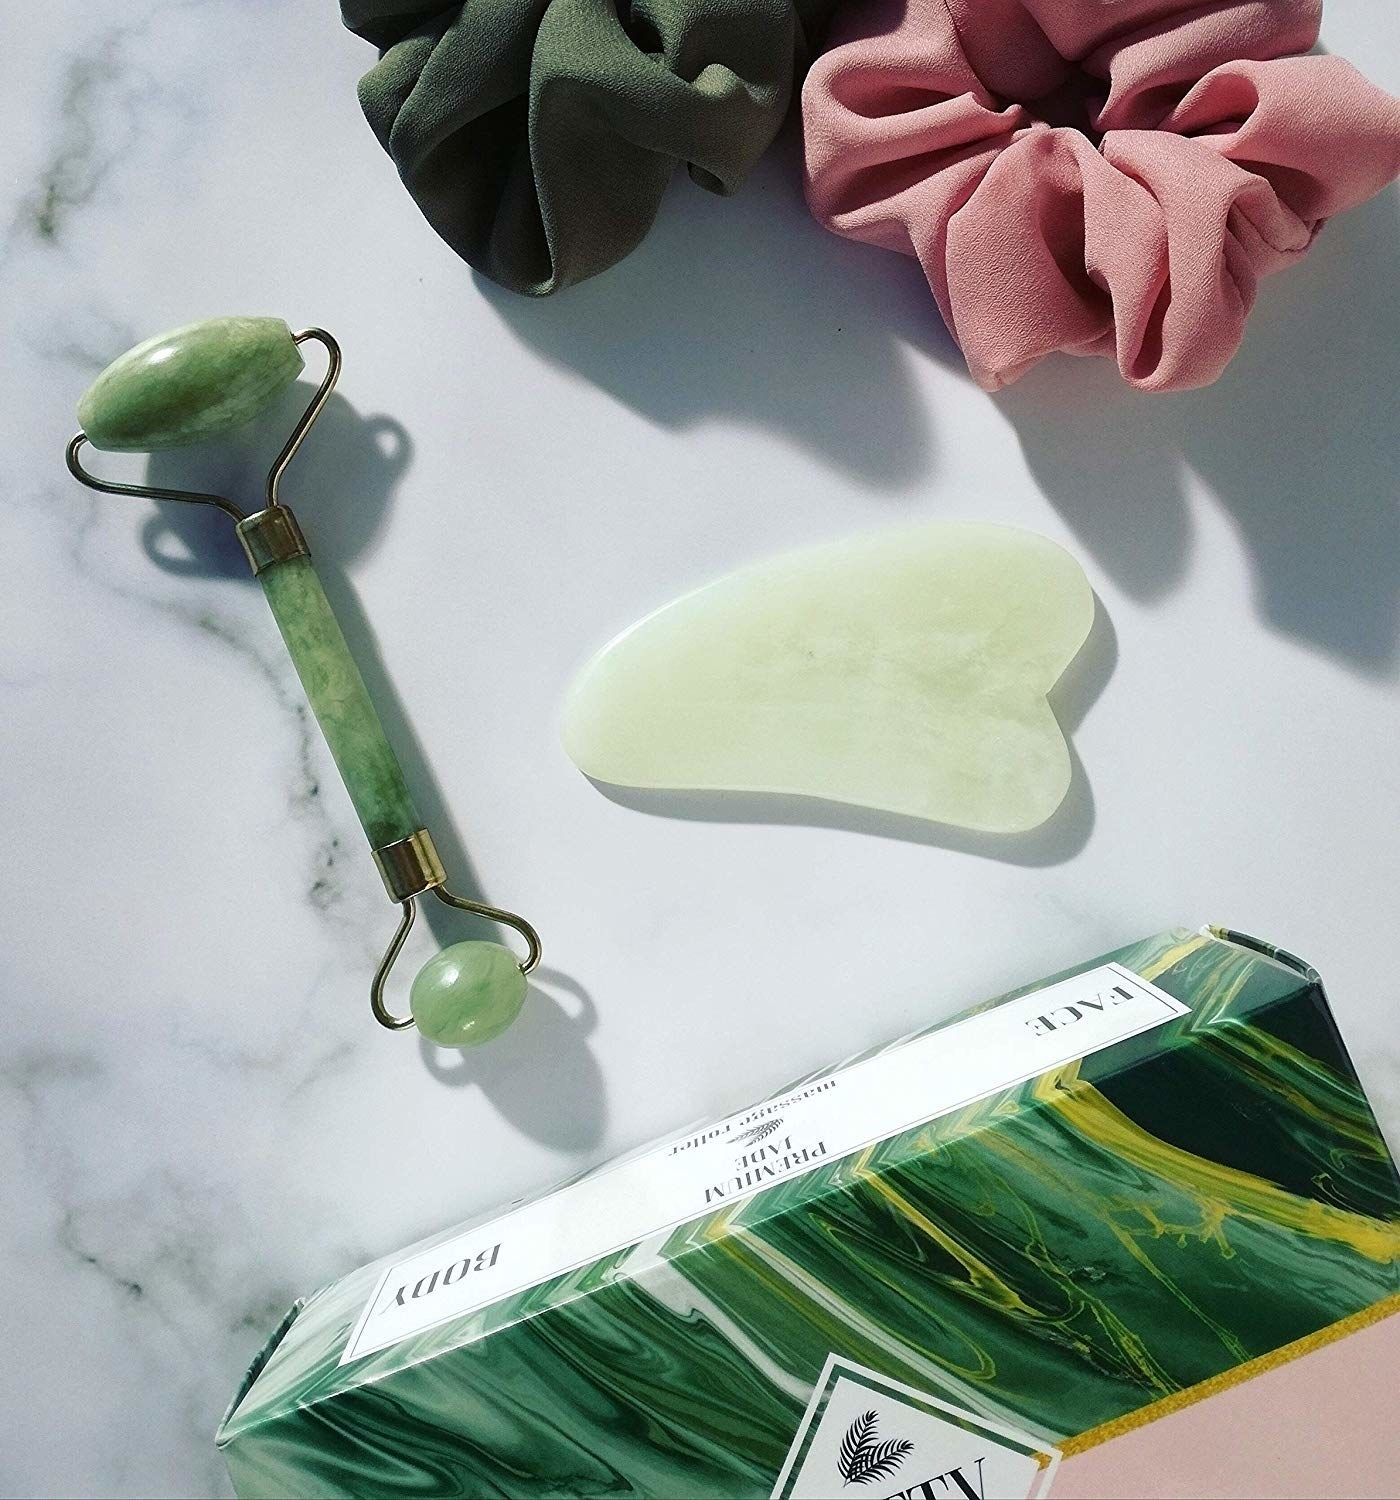 the green jade roller and gua sha set next to two hair scrunchies